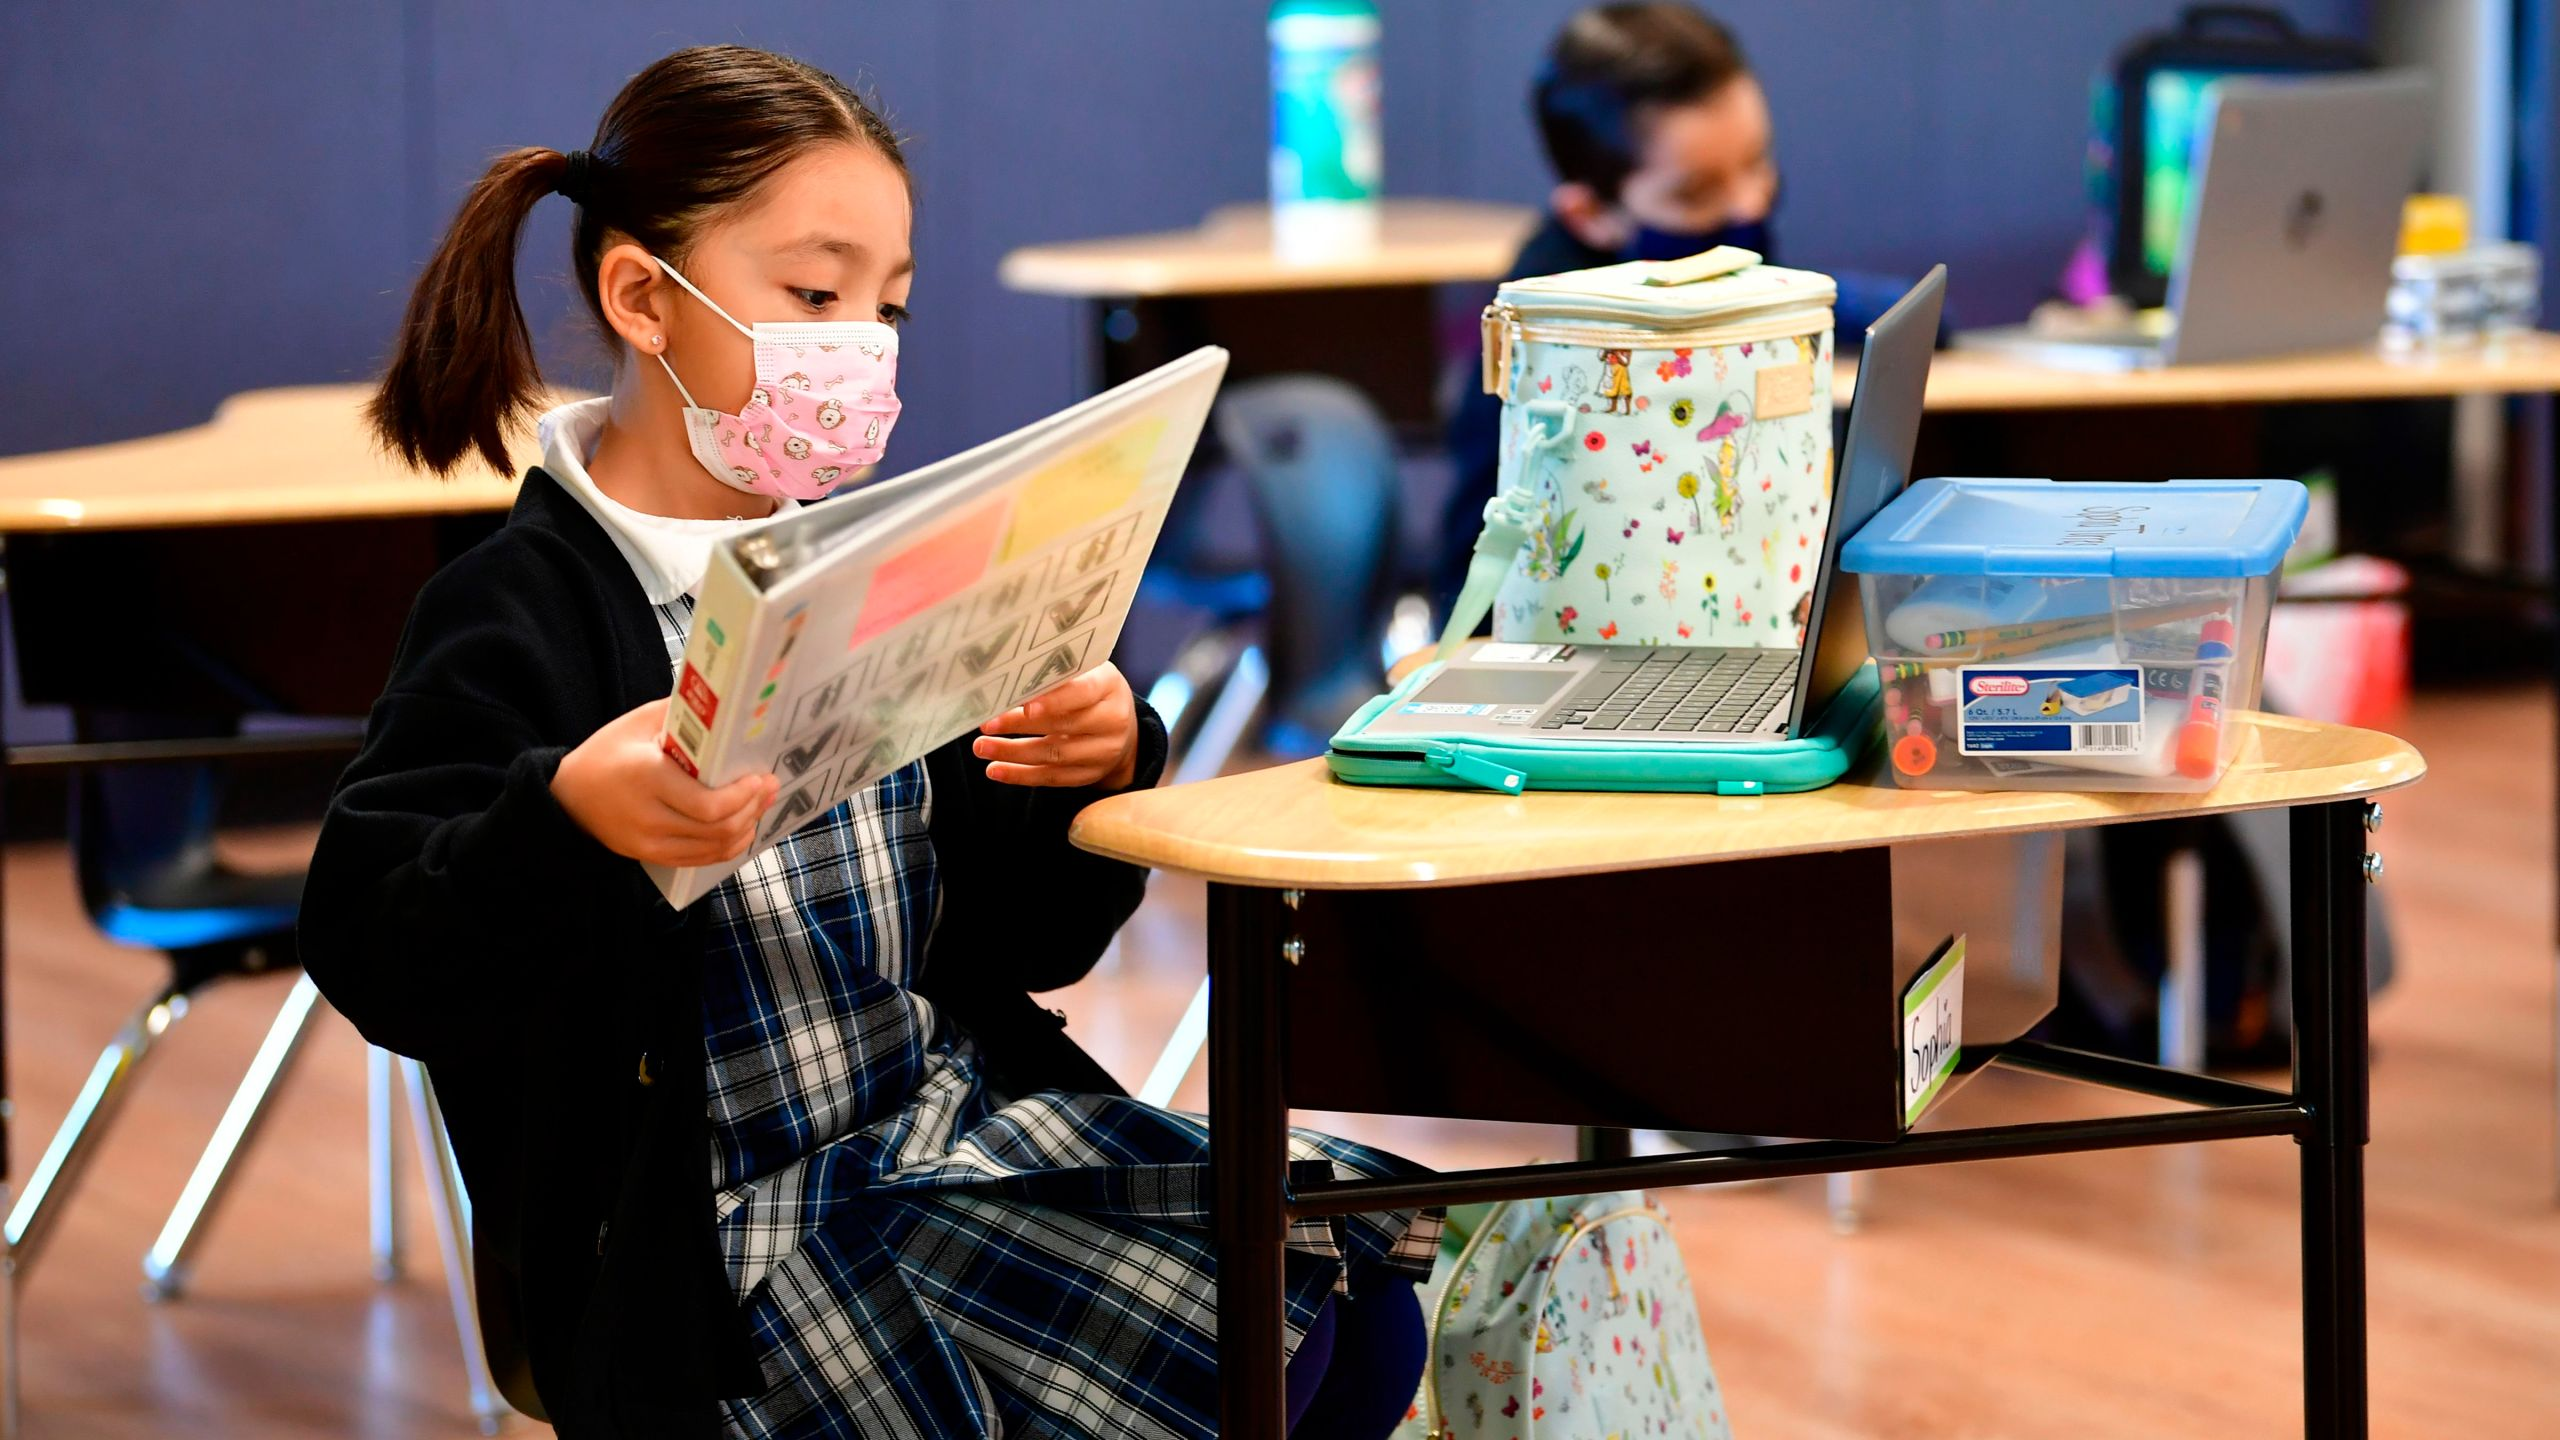 First grade students prepare for class at St. Joseph Catholic School in La Puente, California on Nov. 16, 2020 (FREDERIC J. BROWN/AFP via Getty Images)